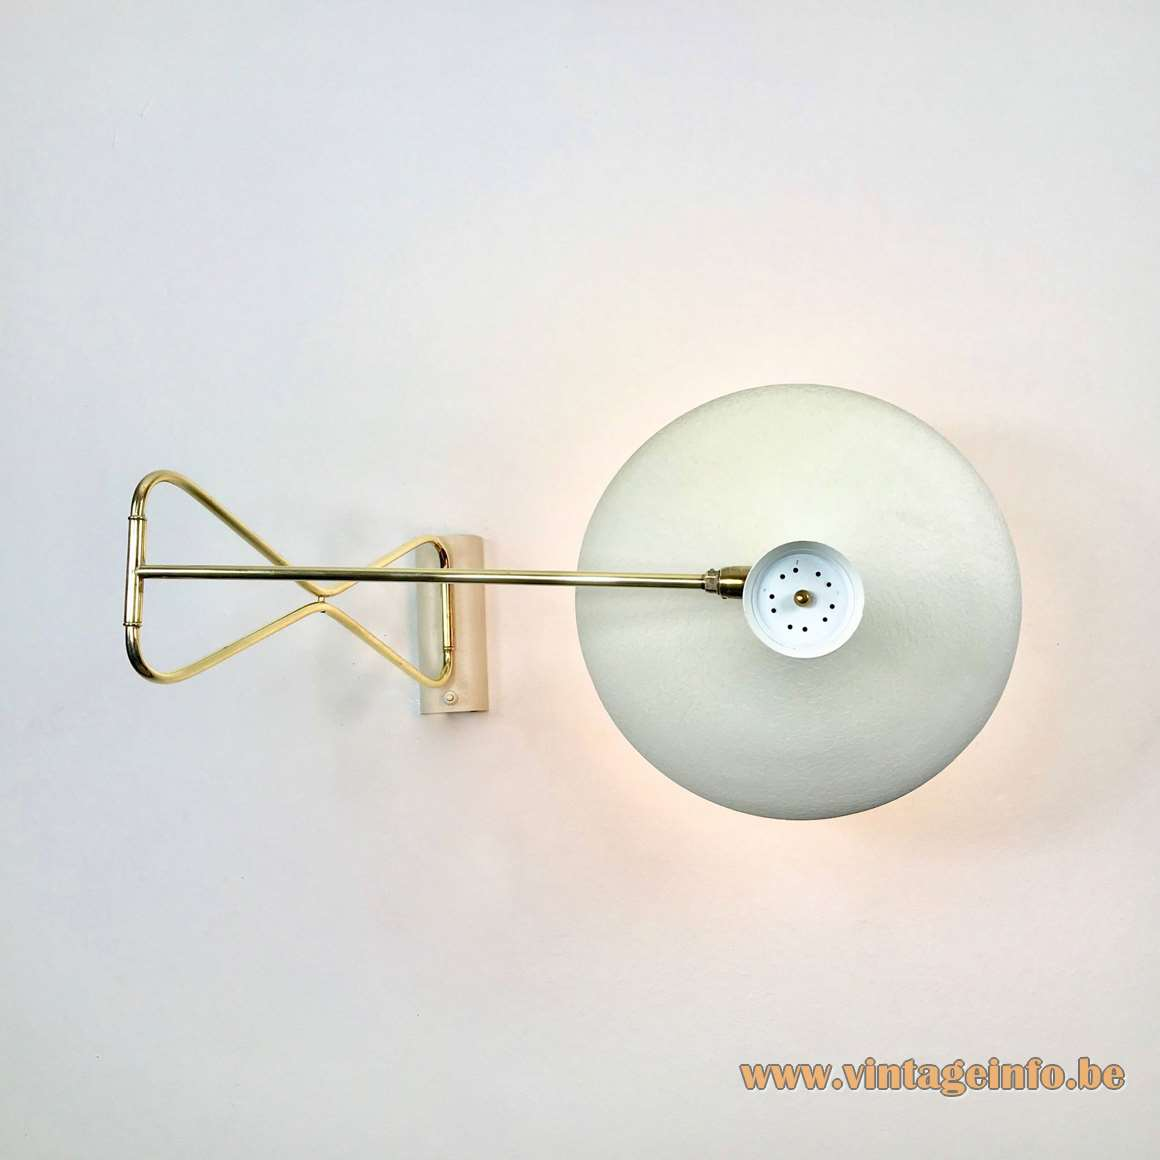 Cosack swing-arm diabolo wall lamp adjustable brass rods wrinkle paint lampshade 1950s 1960s vintage MCM